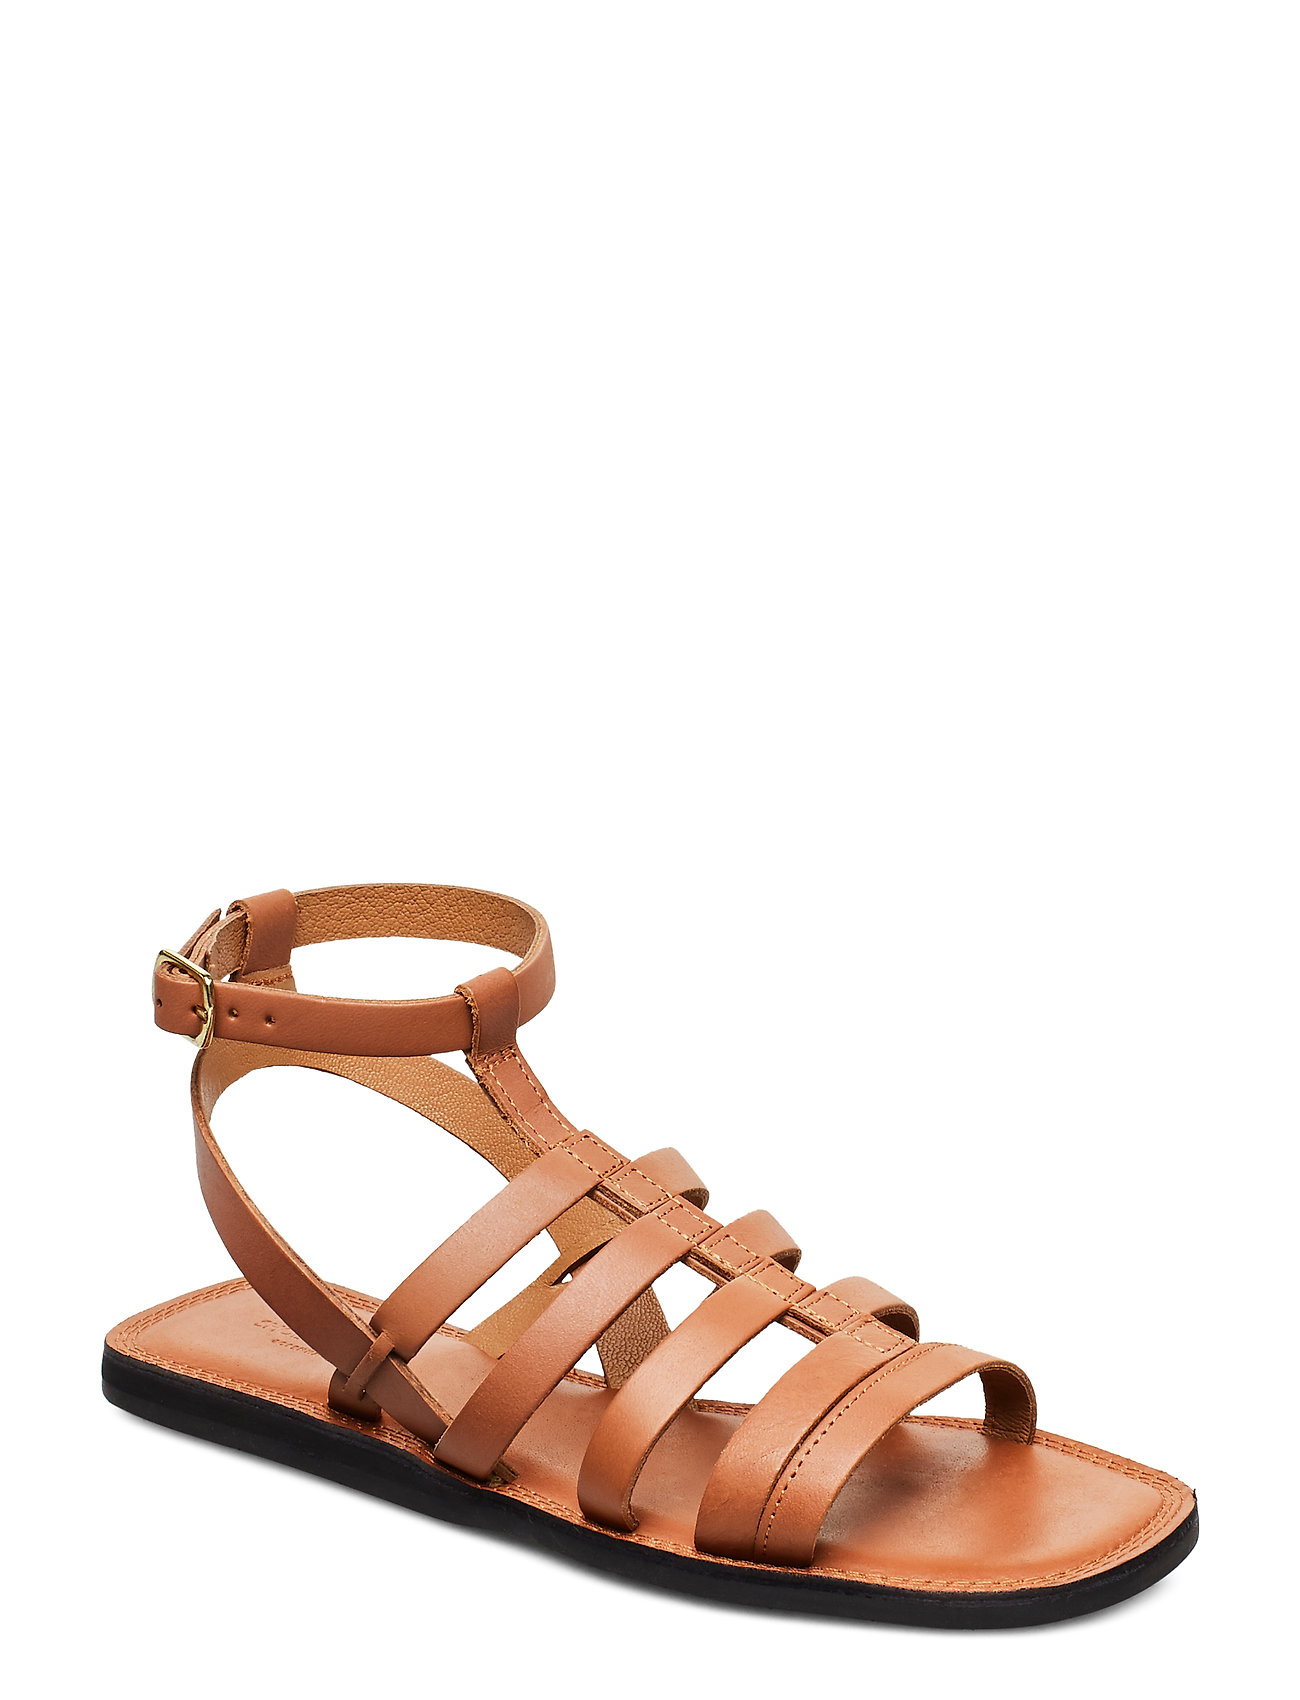 Image of Stb-Tao Gladiator Shoes Summer Shoes Flat Sandals Shoe The Bear (3372489435)